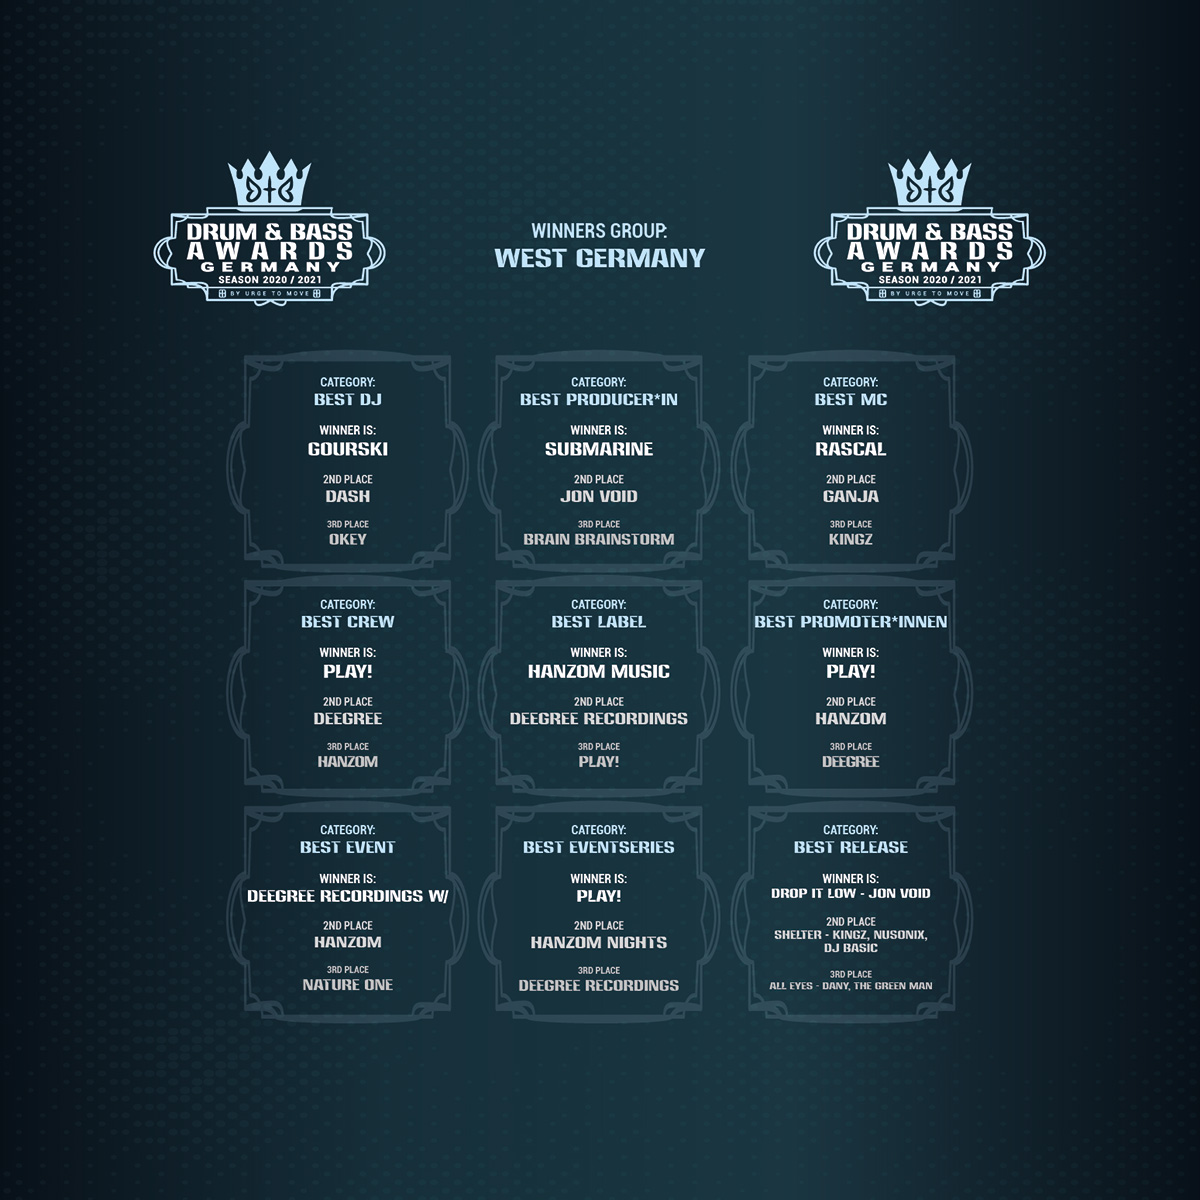 Drum and Bass Awards Germany - WEST